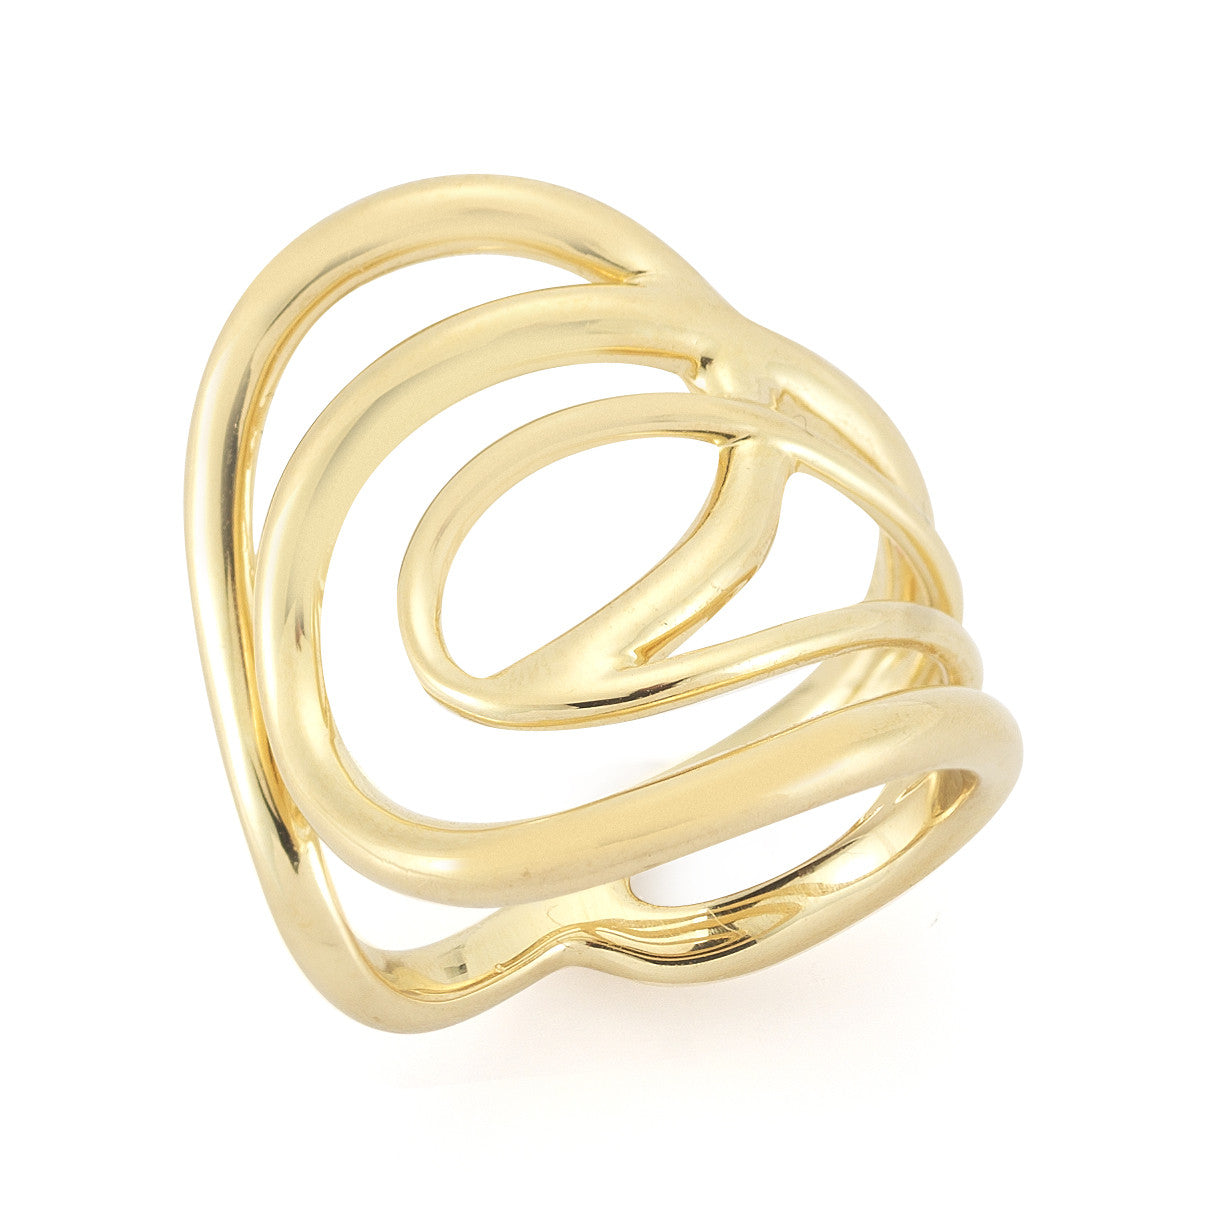 ELIZABETH AND JAMES - GOLD ELLIE RING